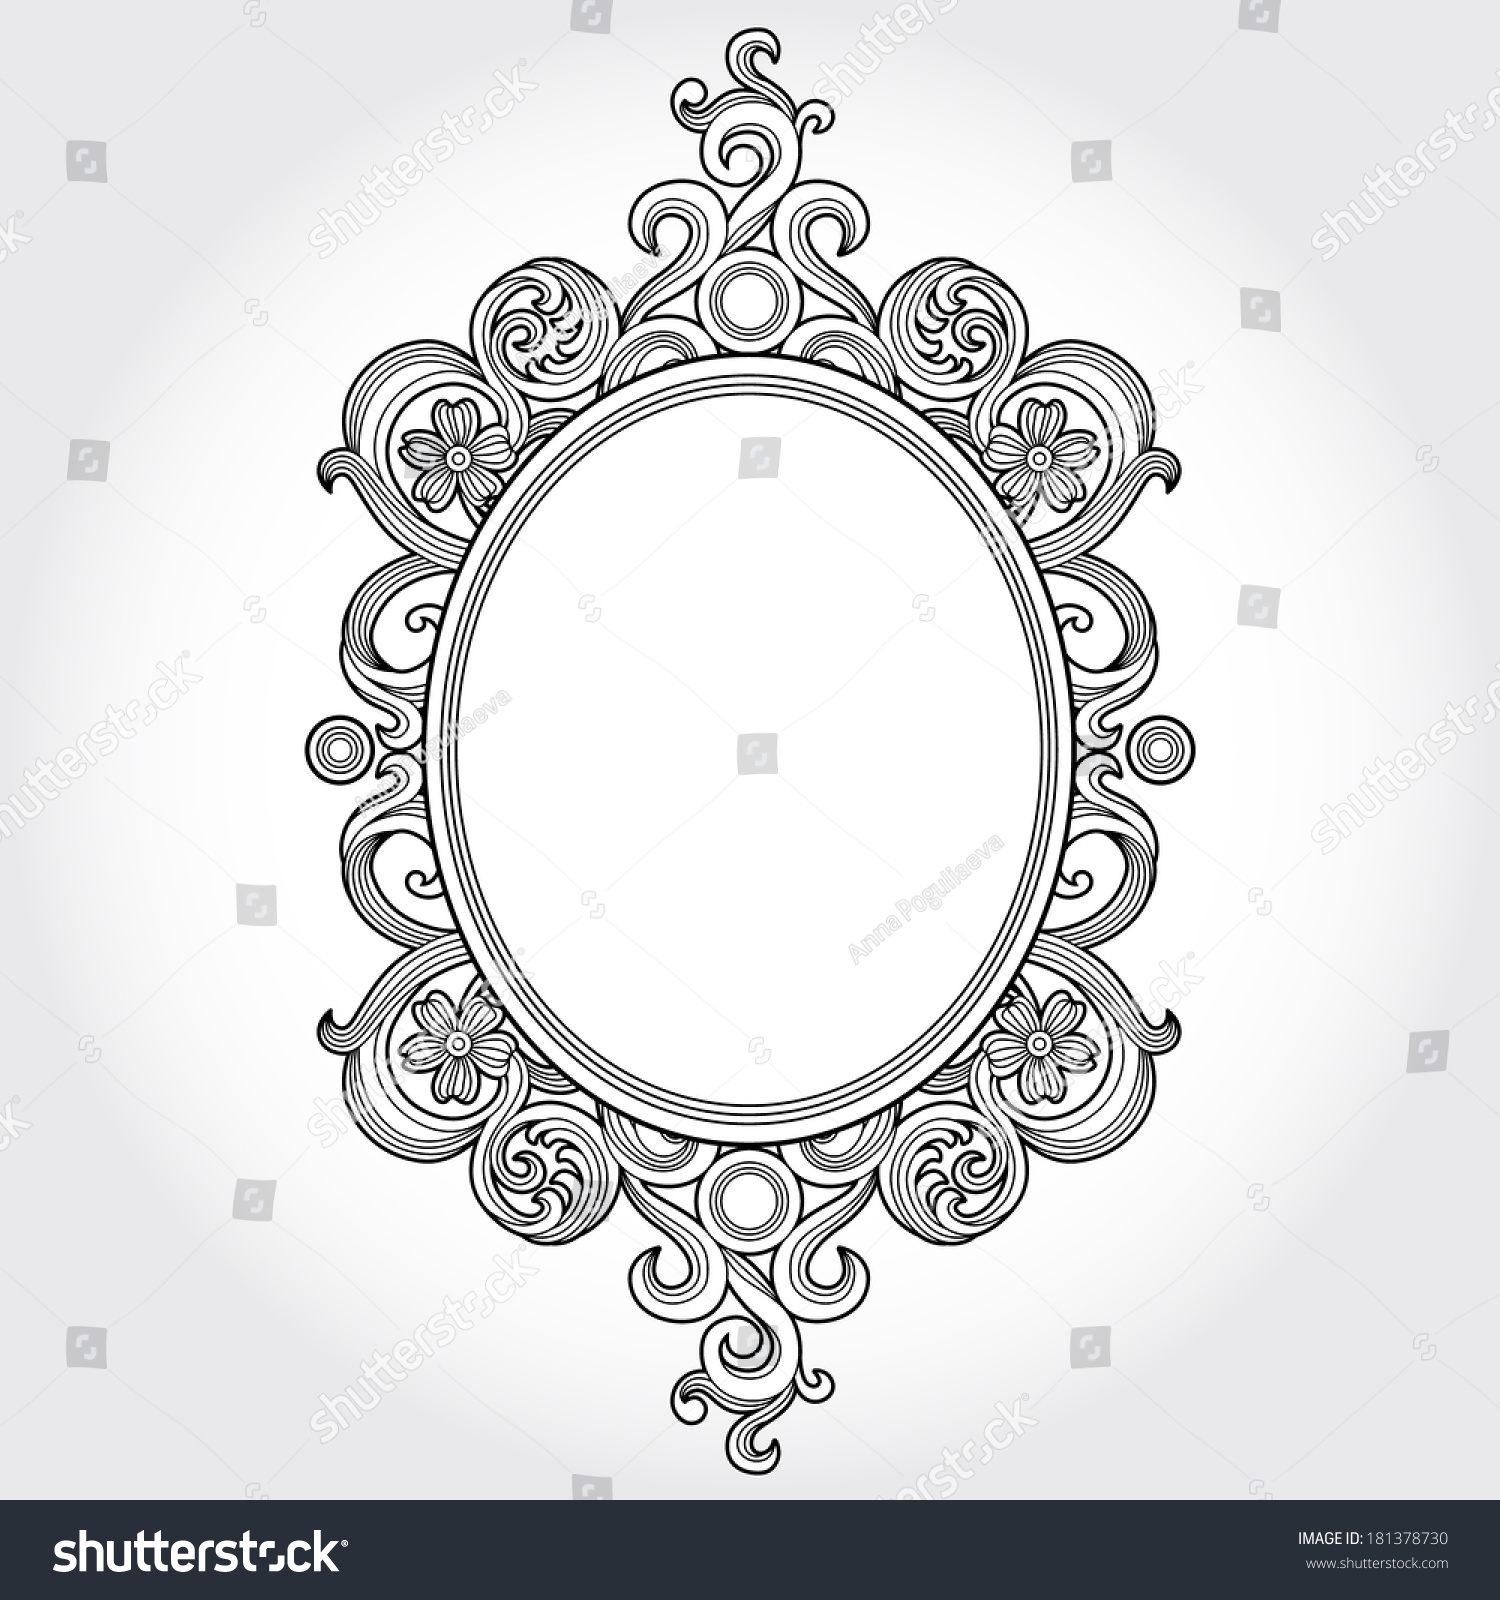 Vintage Ornate Frame Place Your Text Stock Vector 181378730 ...